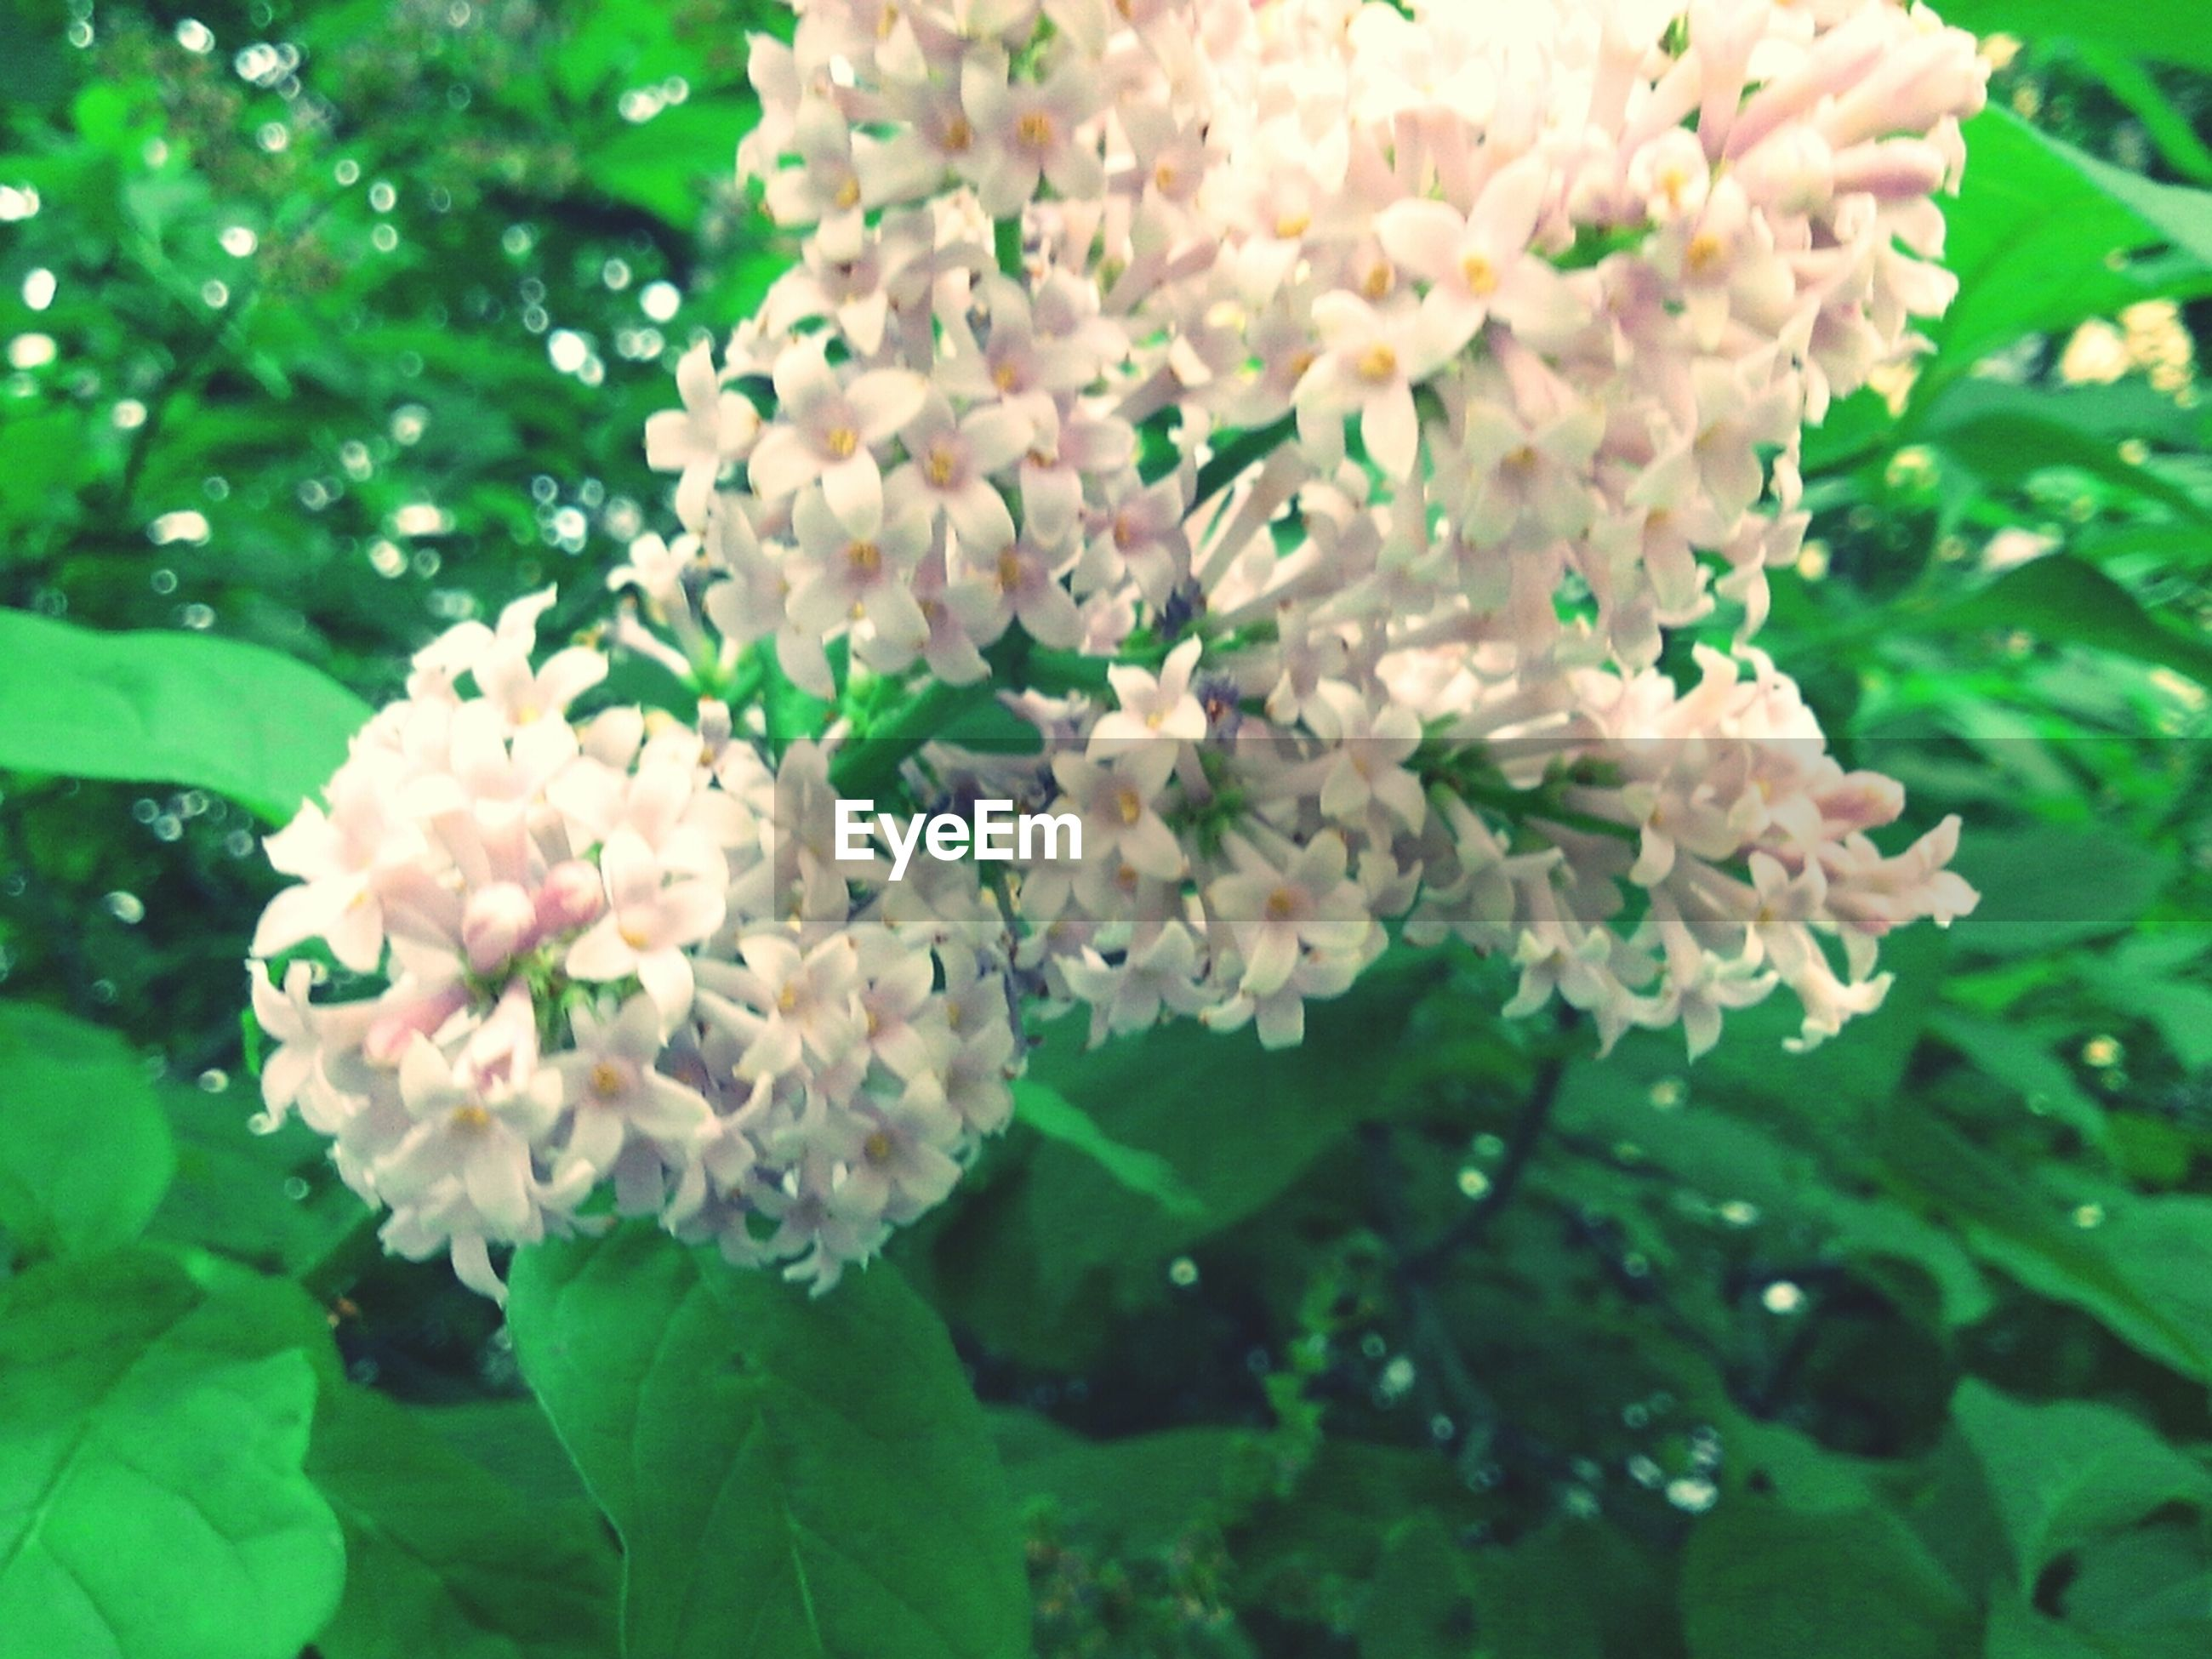 flower, freshness, fragility, petal, growth, flower head, beauty in nature, blooming, white color, leaf, nature, plant, close-up, high angle view, in bloom, green color, park - man made space, blossom, focus on foreground, outdoors